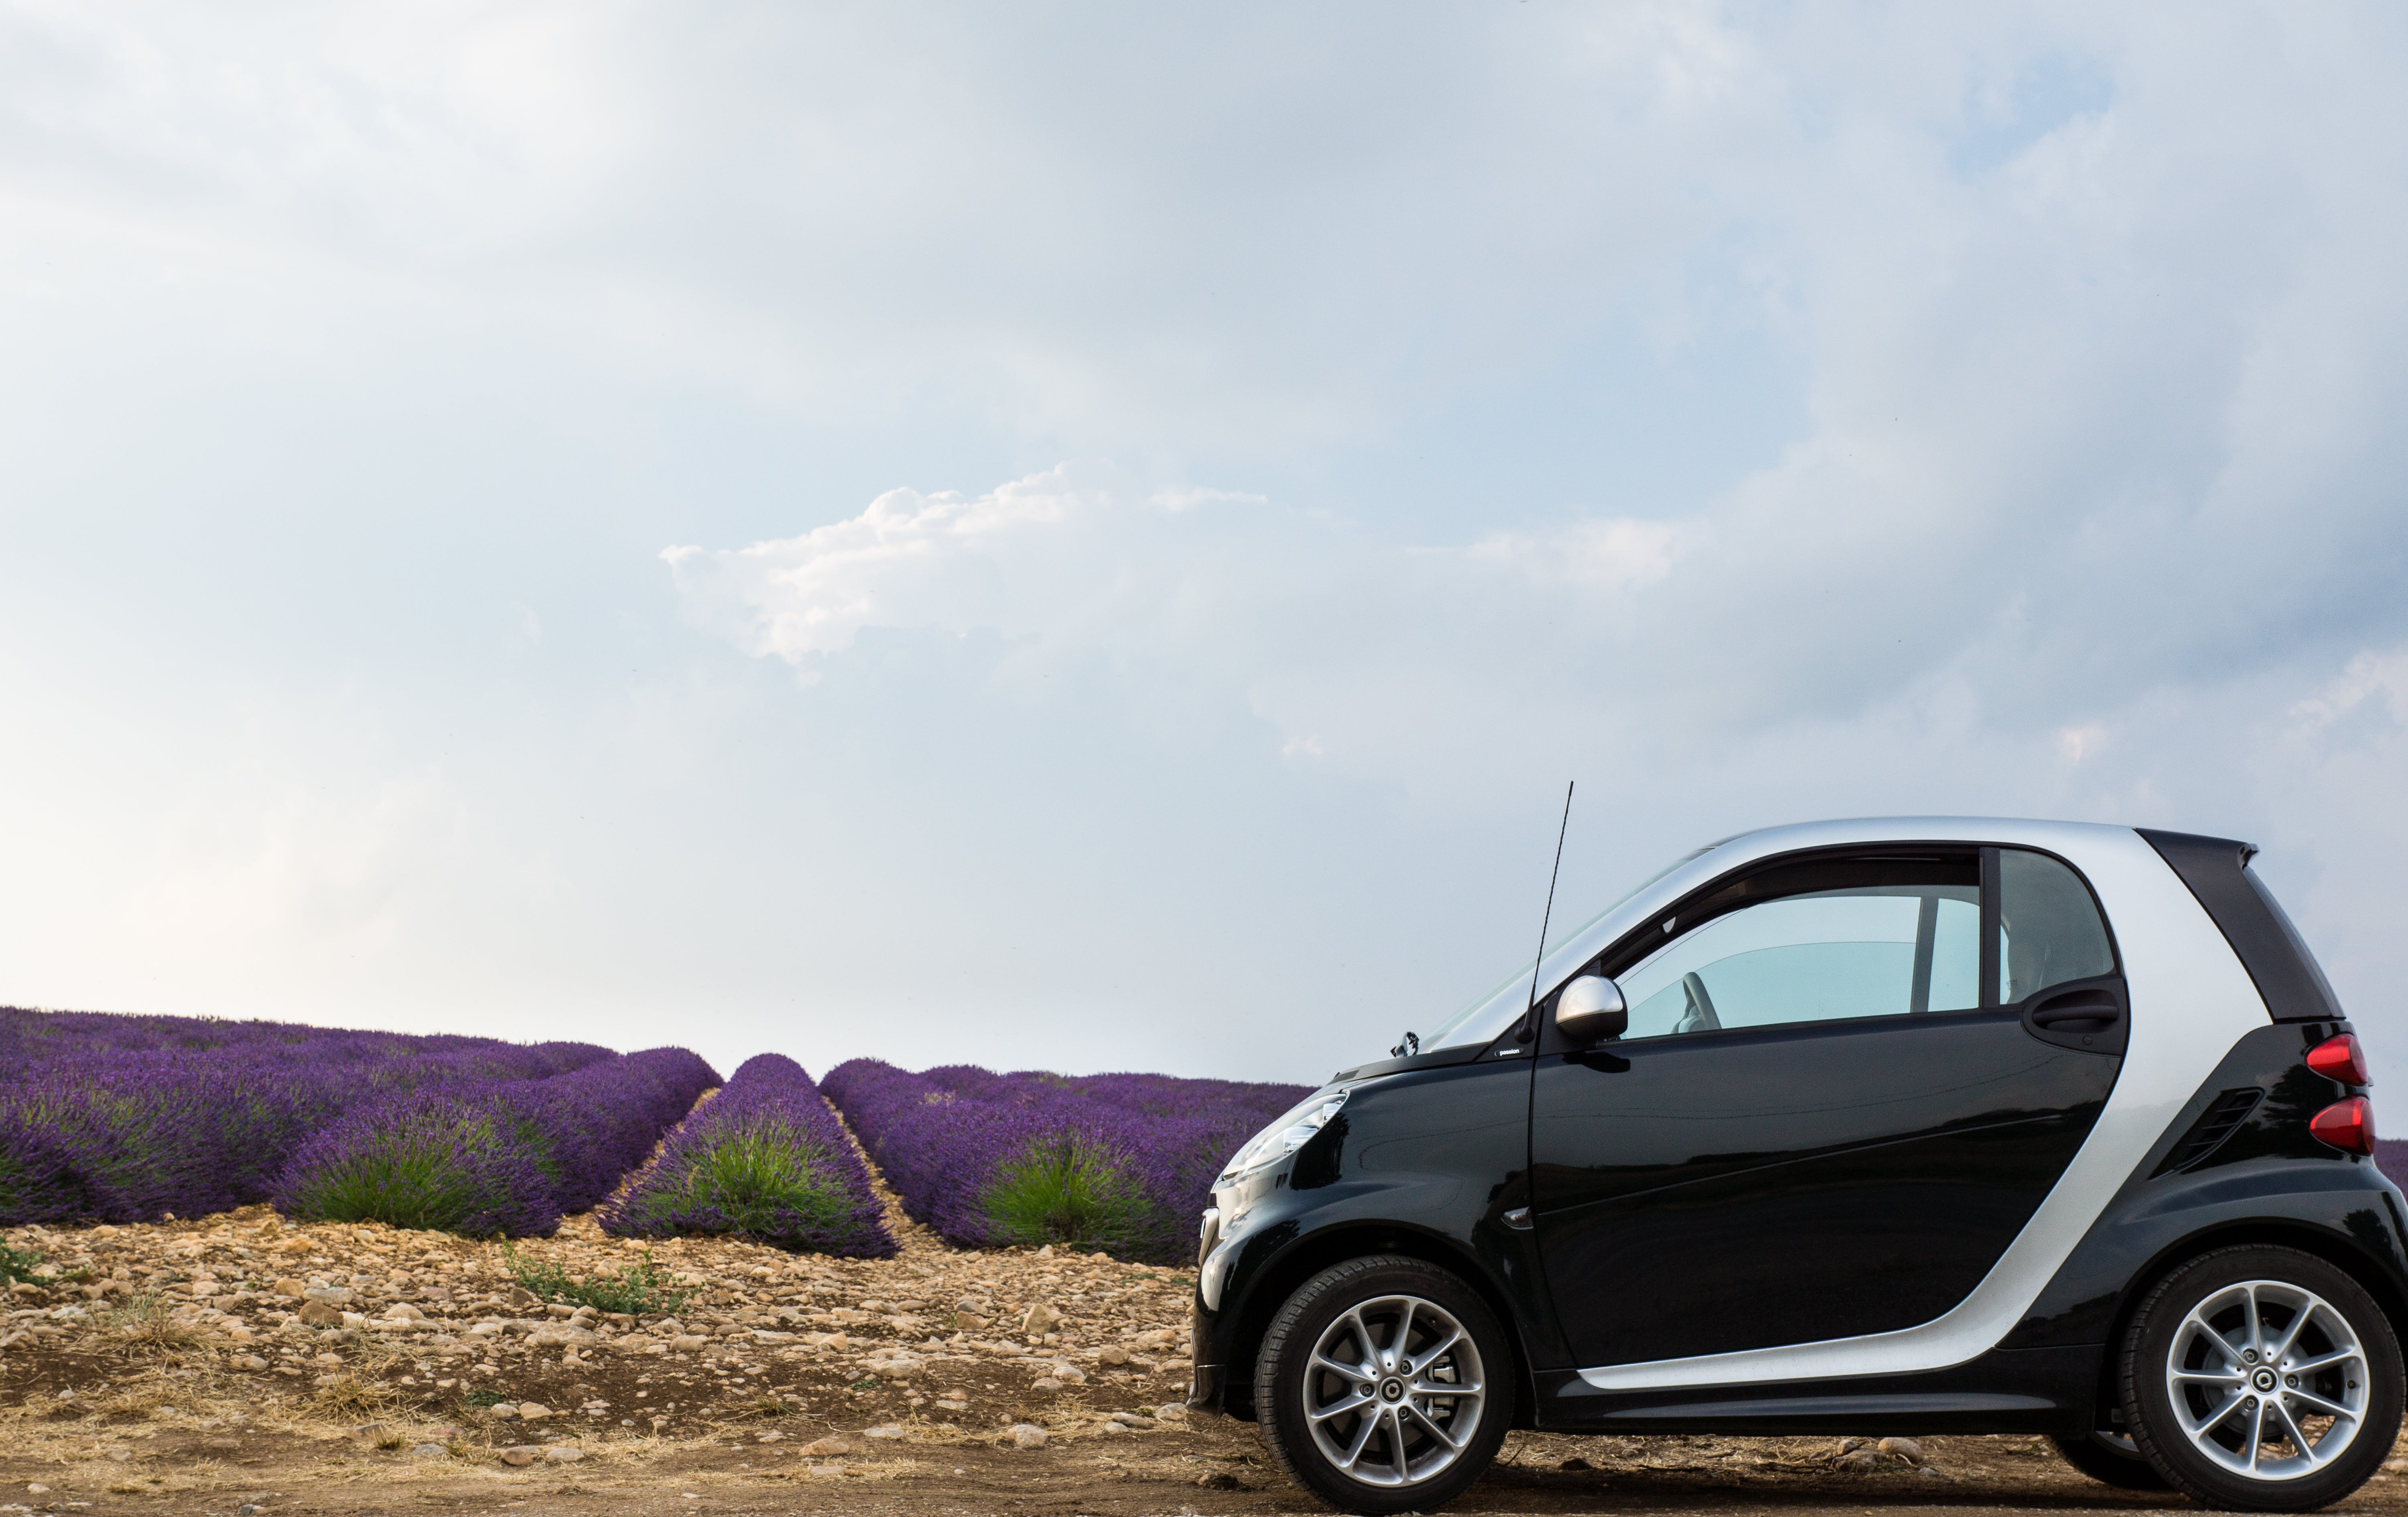 Black and Gray Hatchback in Front of Purple Plants